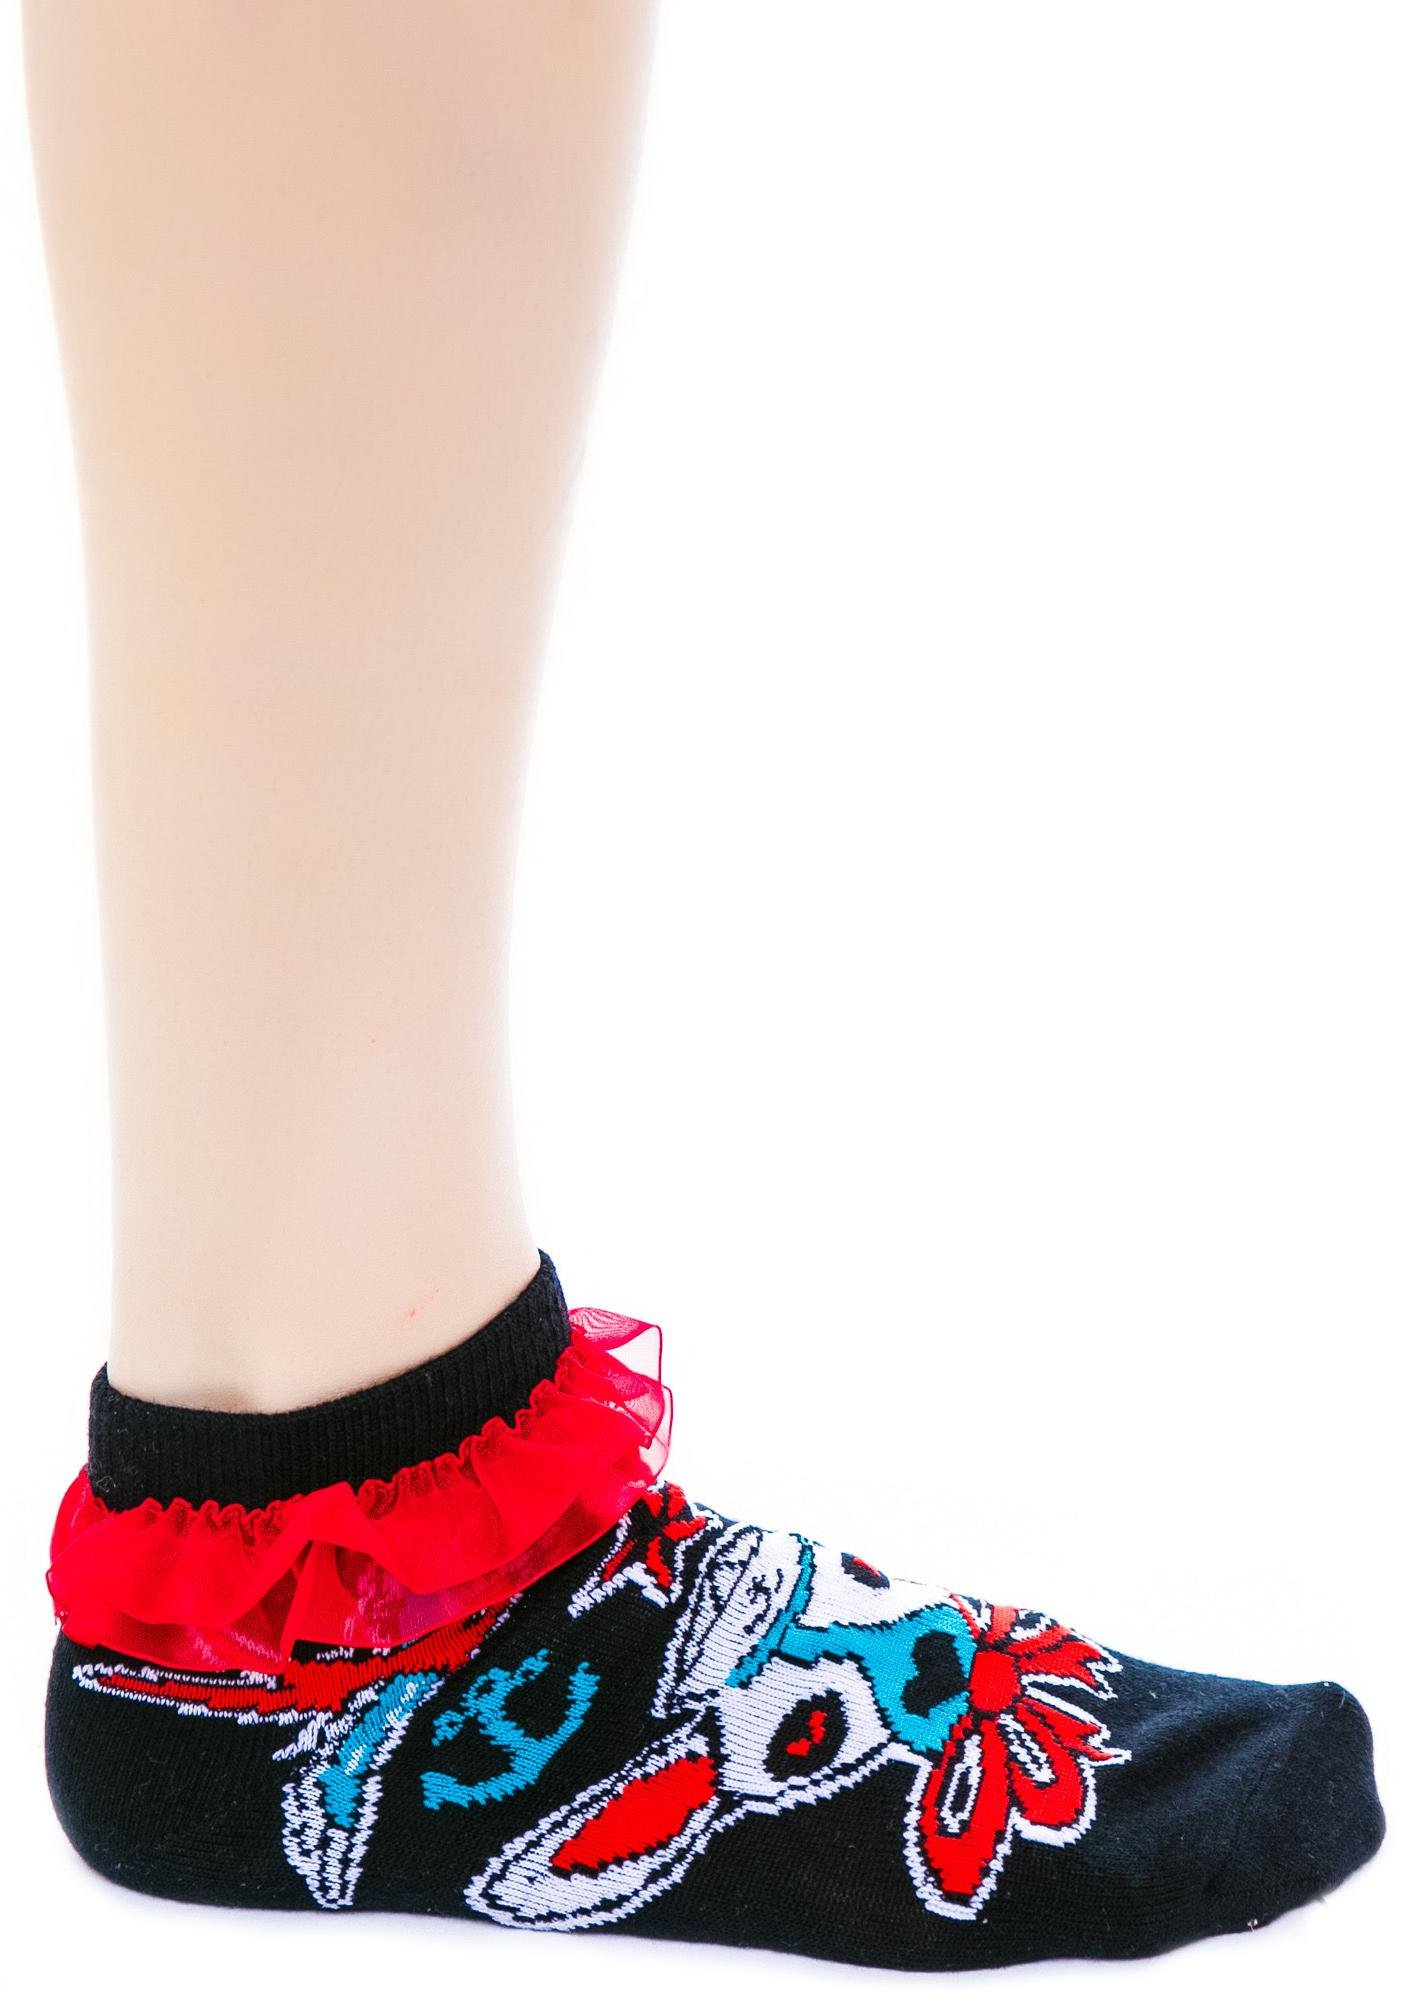 Too Fast Ahoy Ruffle Ankle Socks